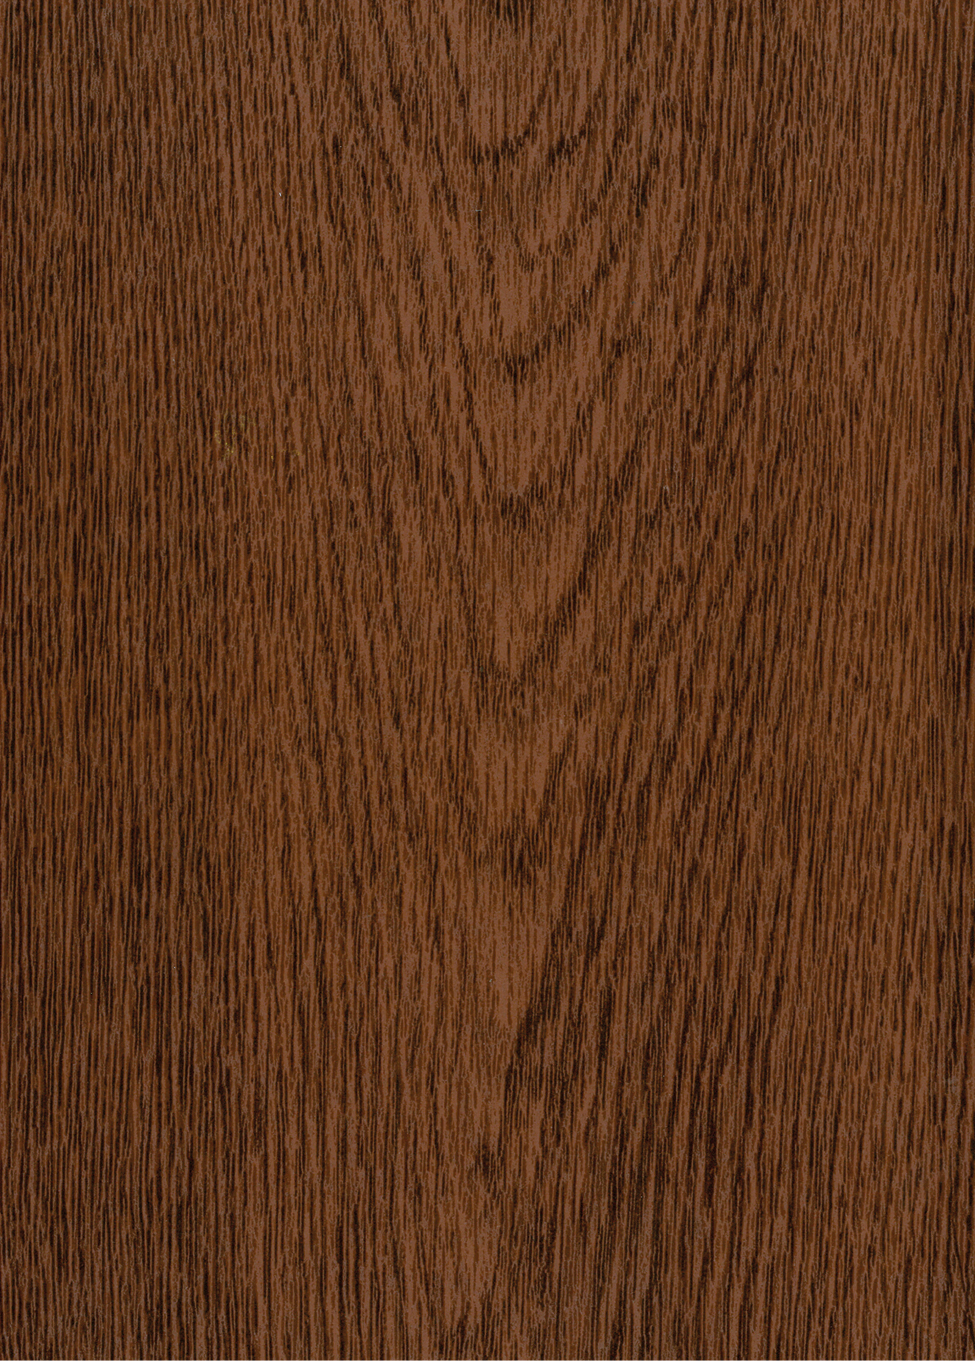 colofer® vario golden oak3